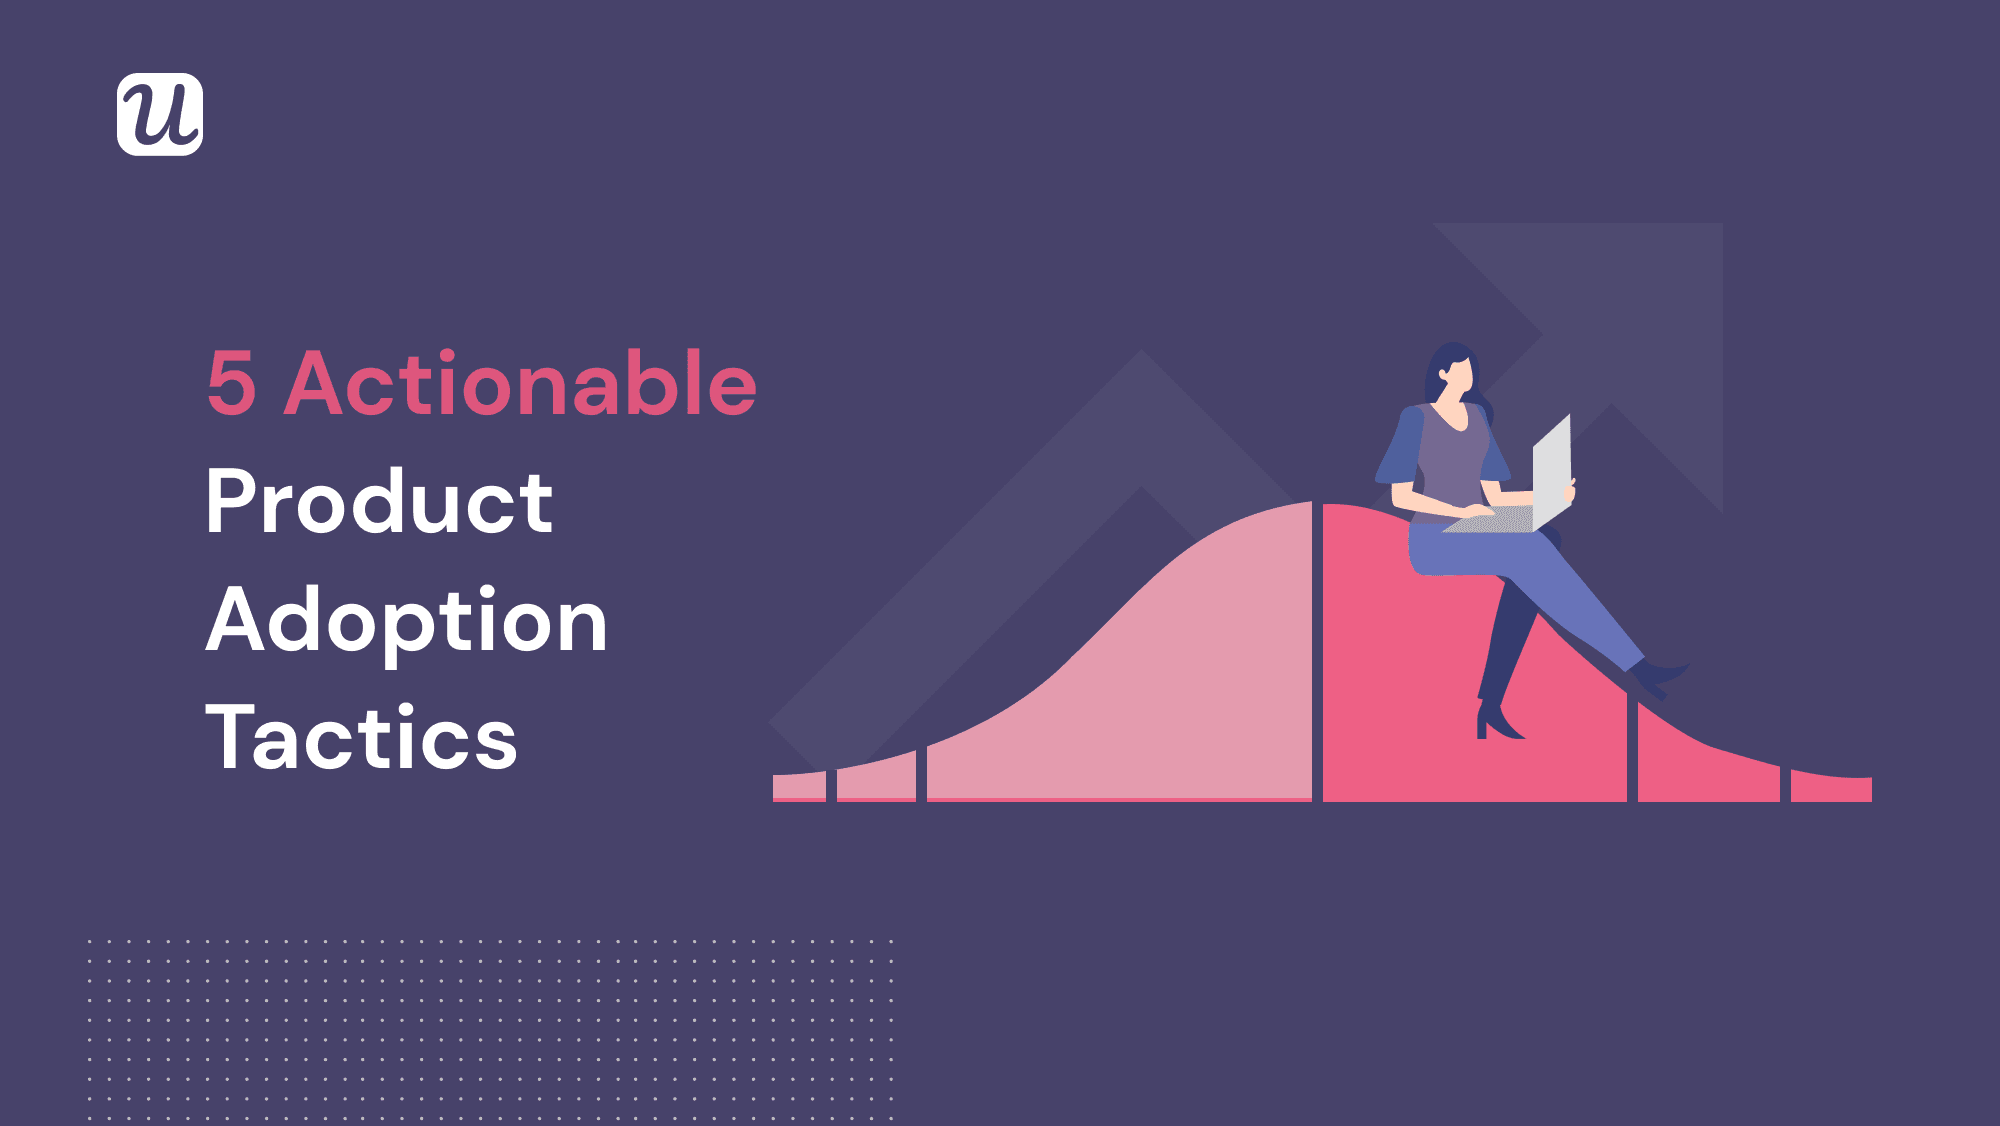 5 Actionable Product Adoption Tactics You Should Try